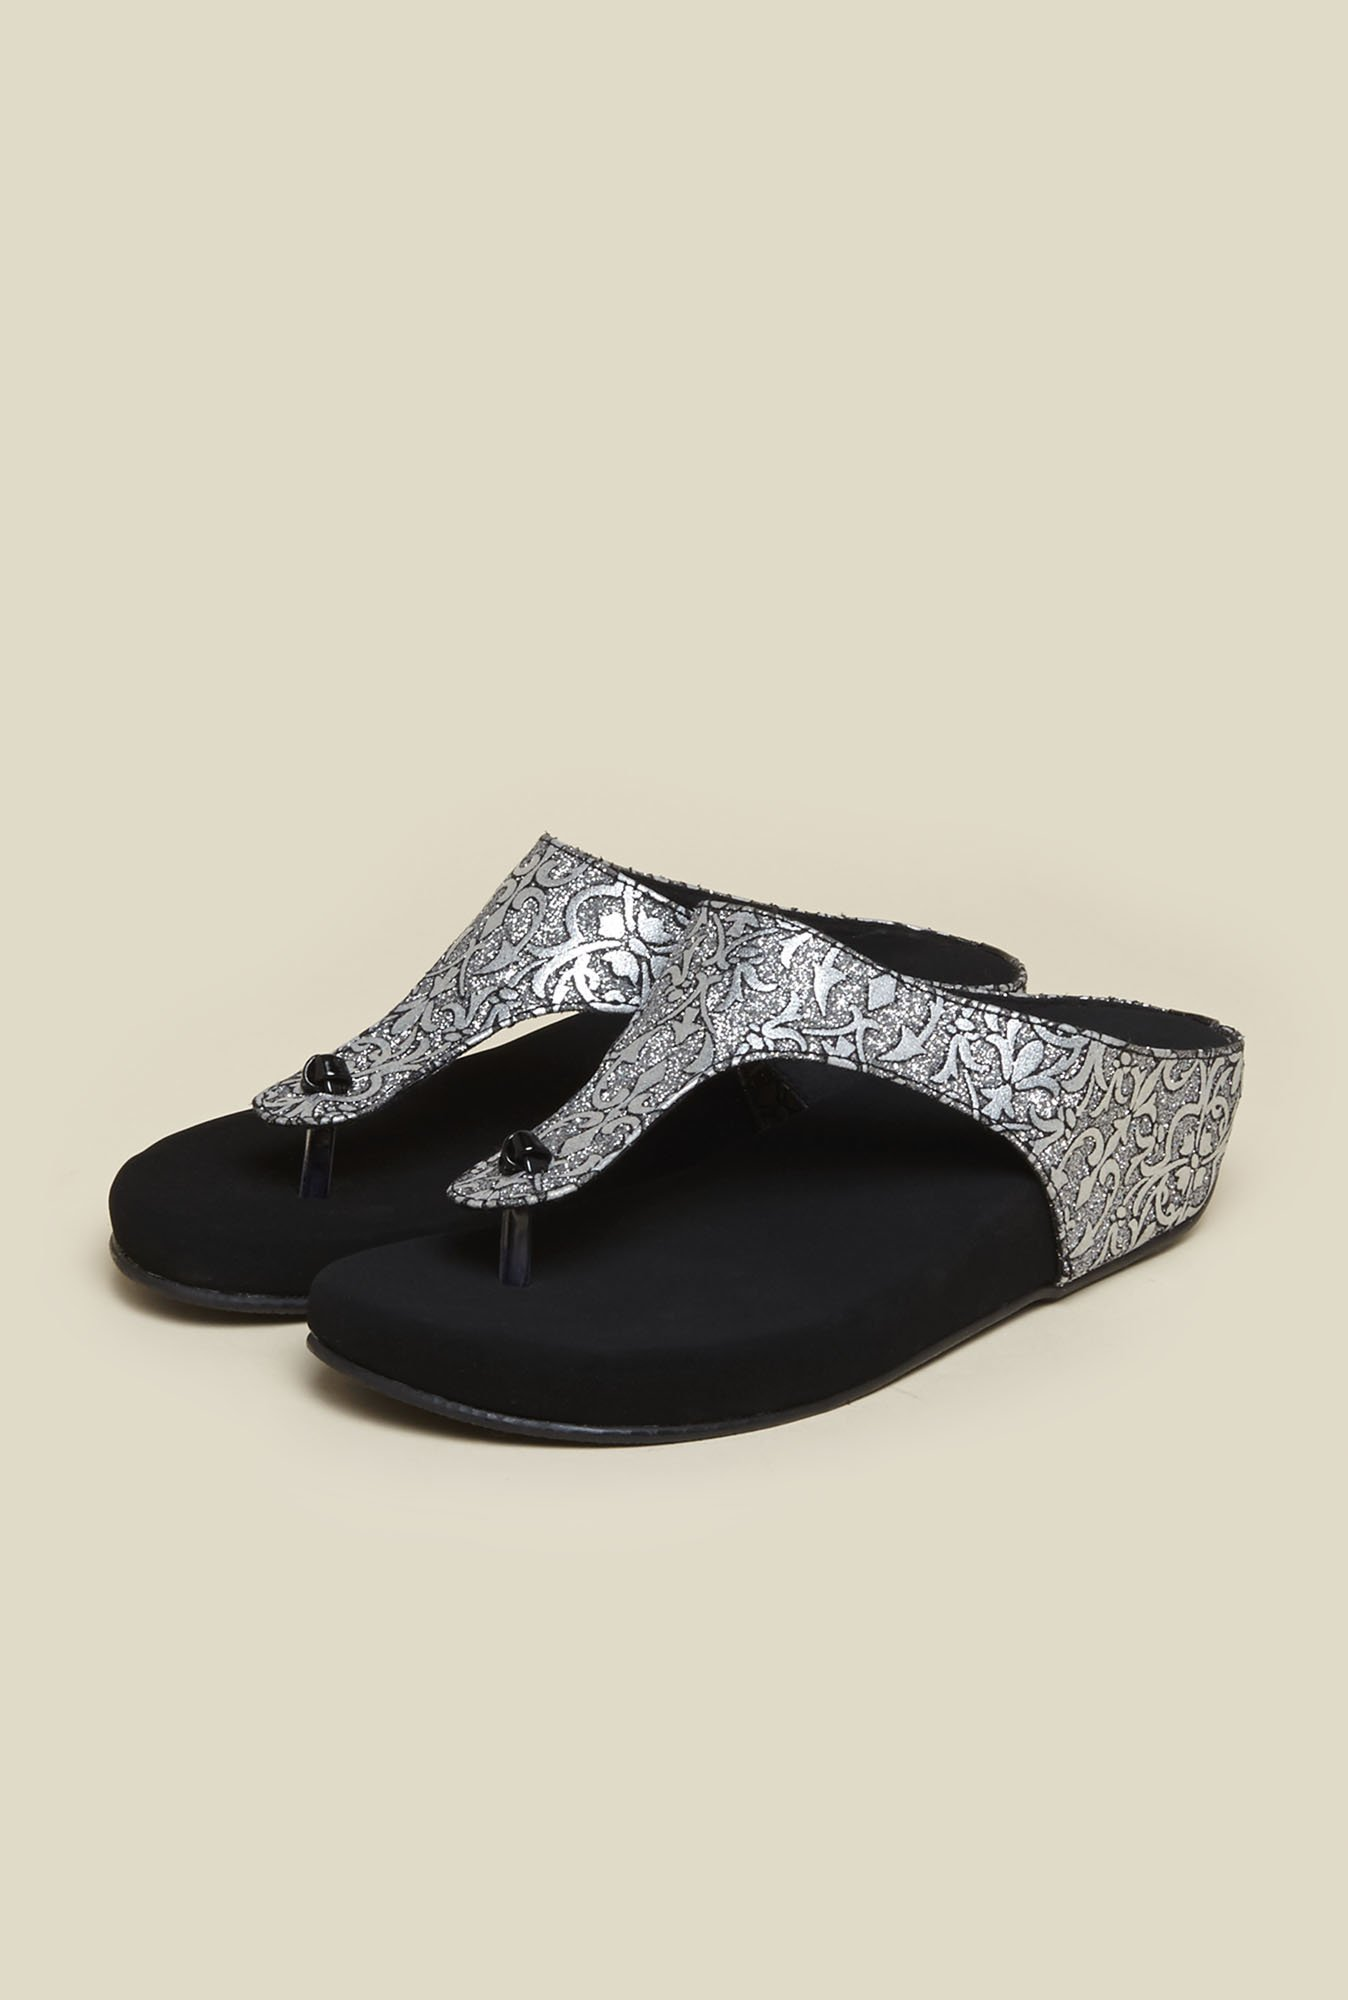 Metro Black & Silver Slip-On Sandals